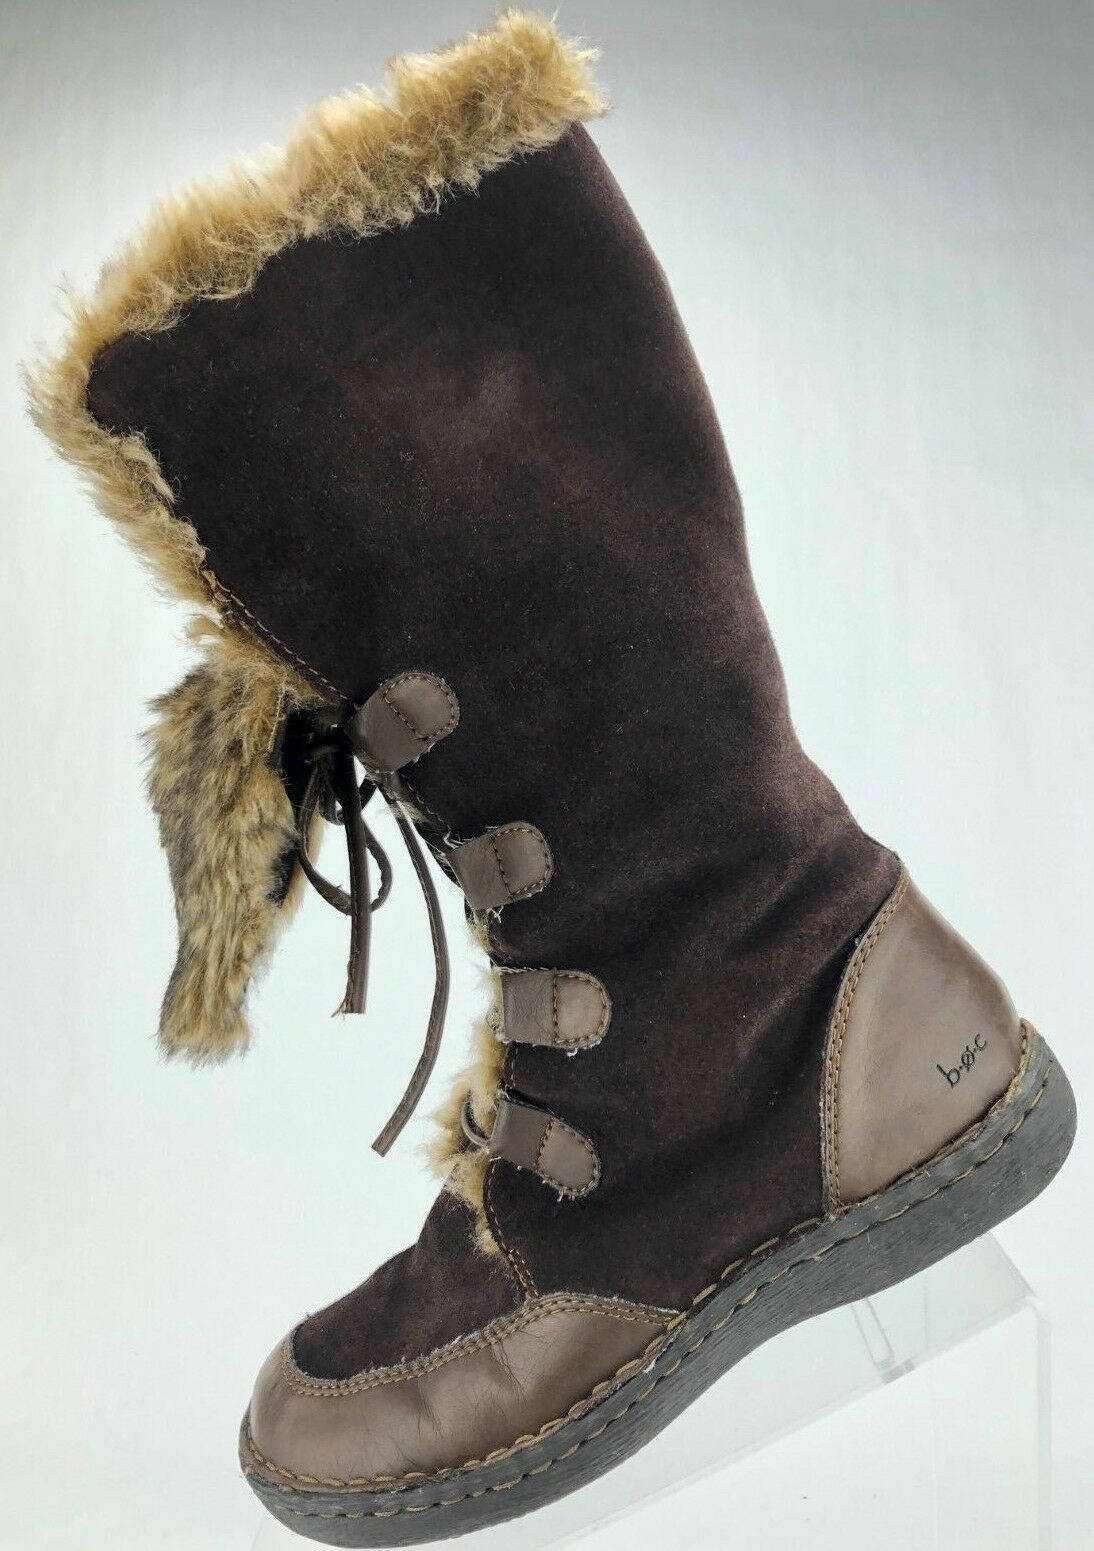 Born Winter Boots - Lace Up Faux Fur Lined Mid Calf Warm Boots Women's 6.5 Brown